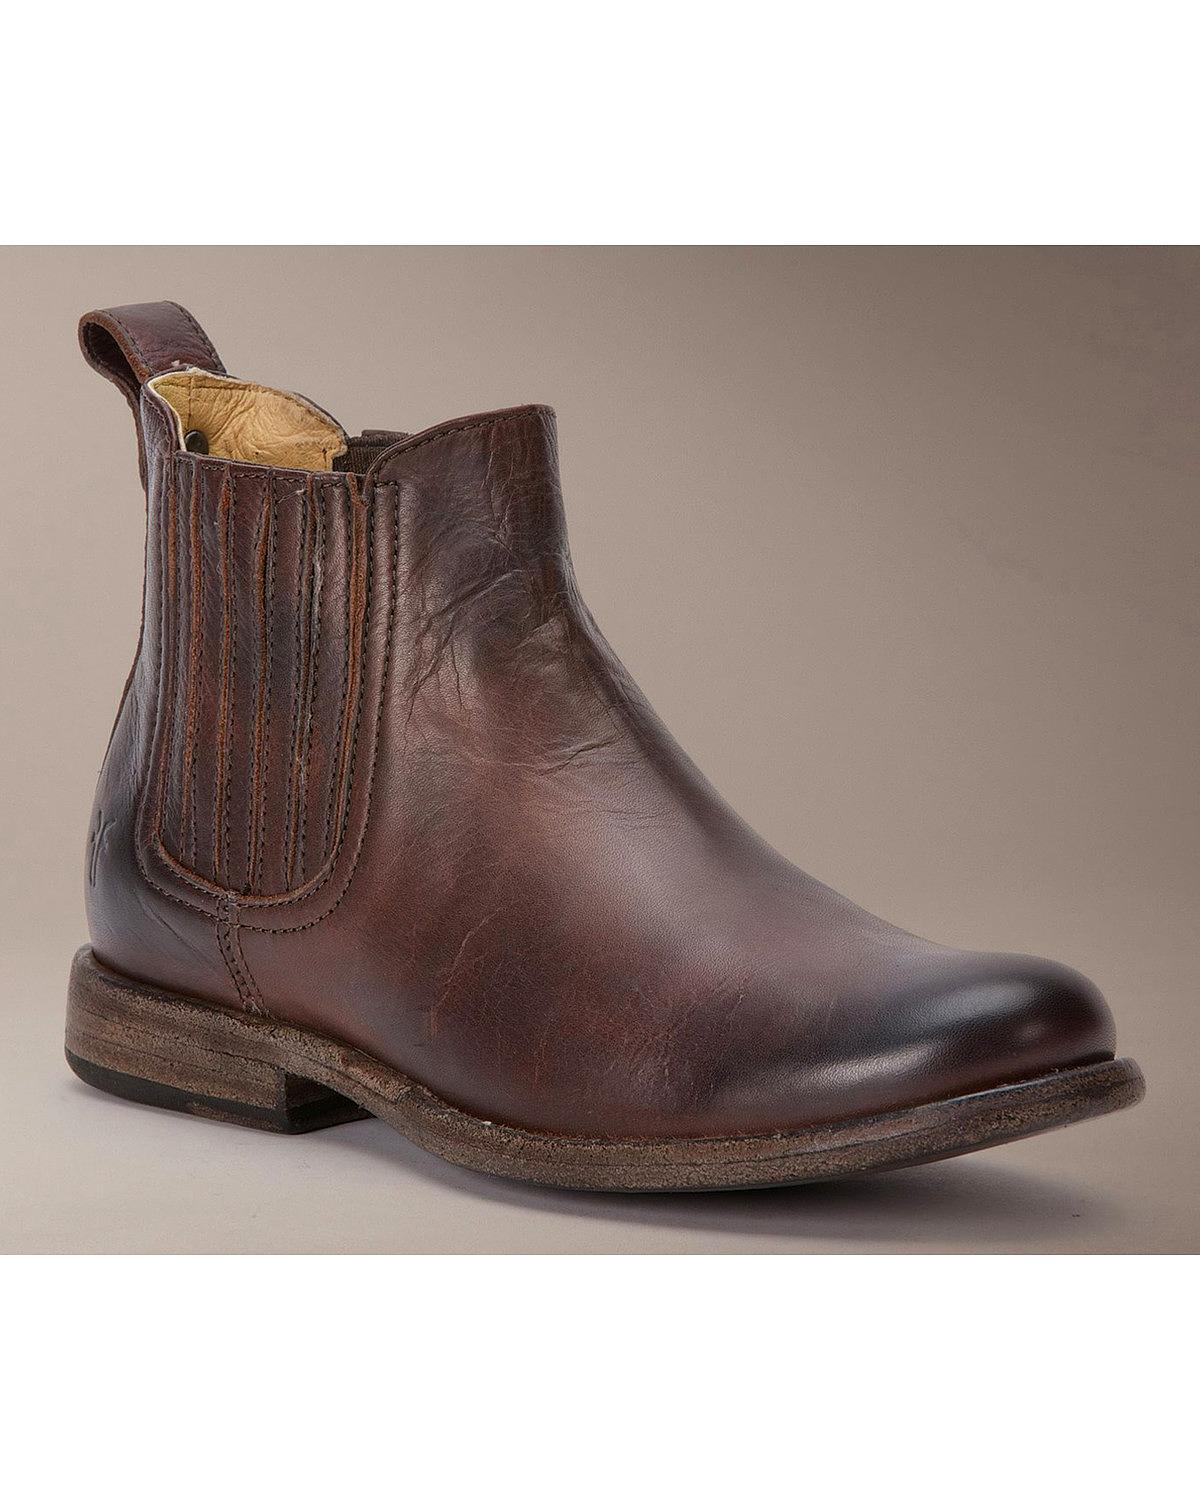 Innovative FRYE Women39s Erin Chelsea Boot  Let39s Get Some Shoes  Pinterest